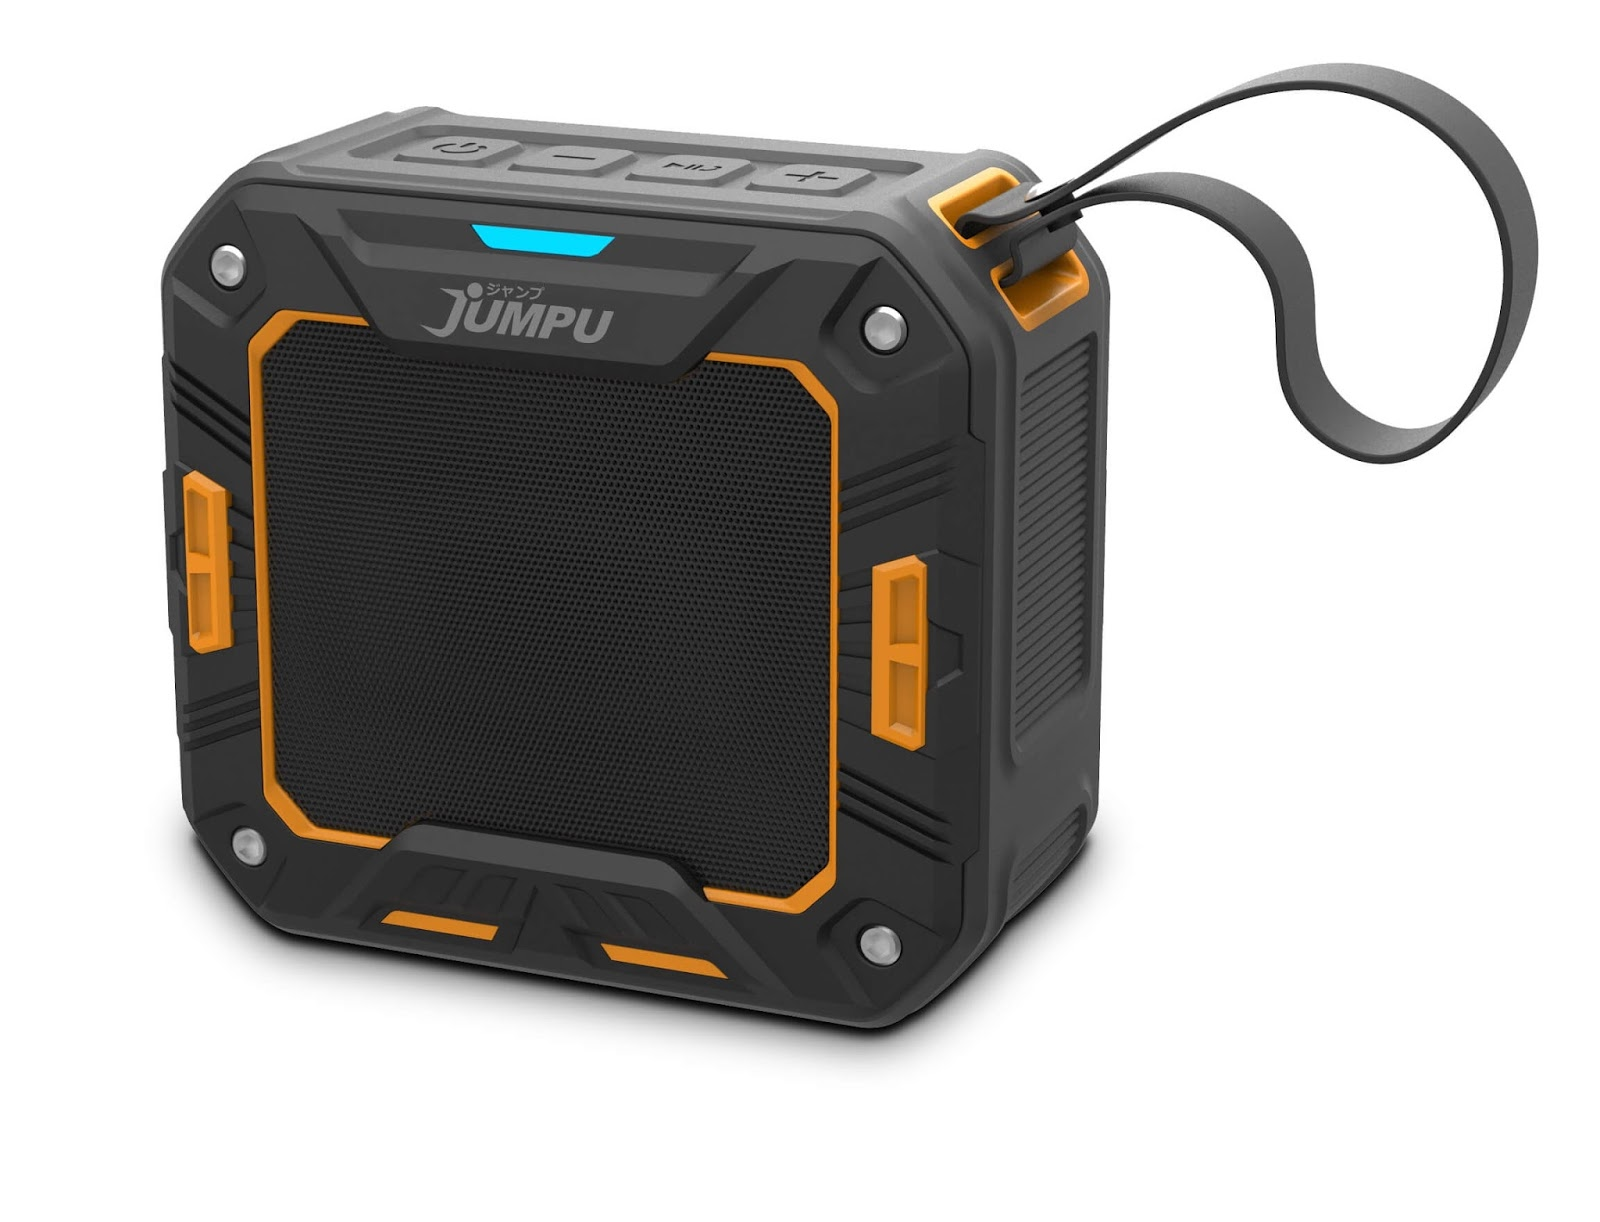 JUMPU Outs Rugged and Water-Resistant Tsuyoi-S Wireless Speaker for Only Php1,290